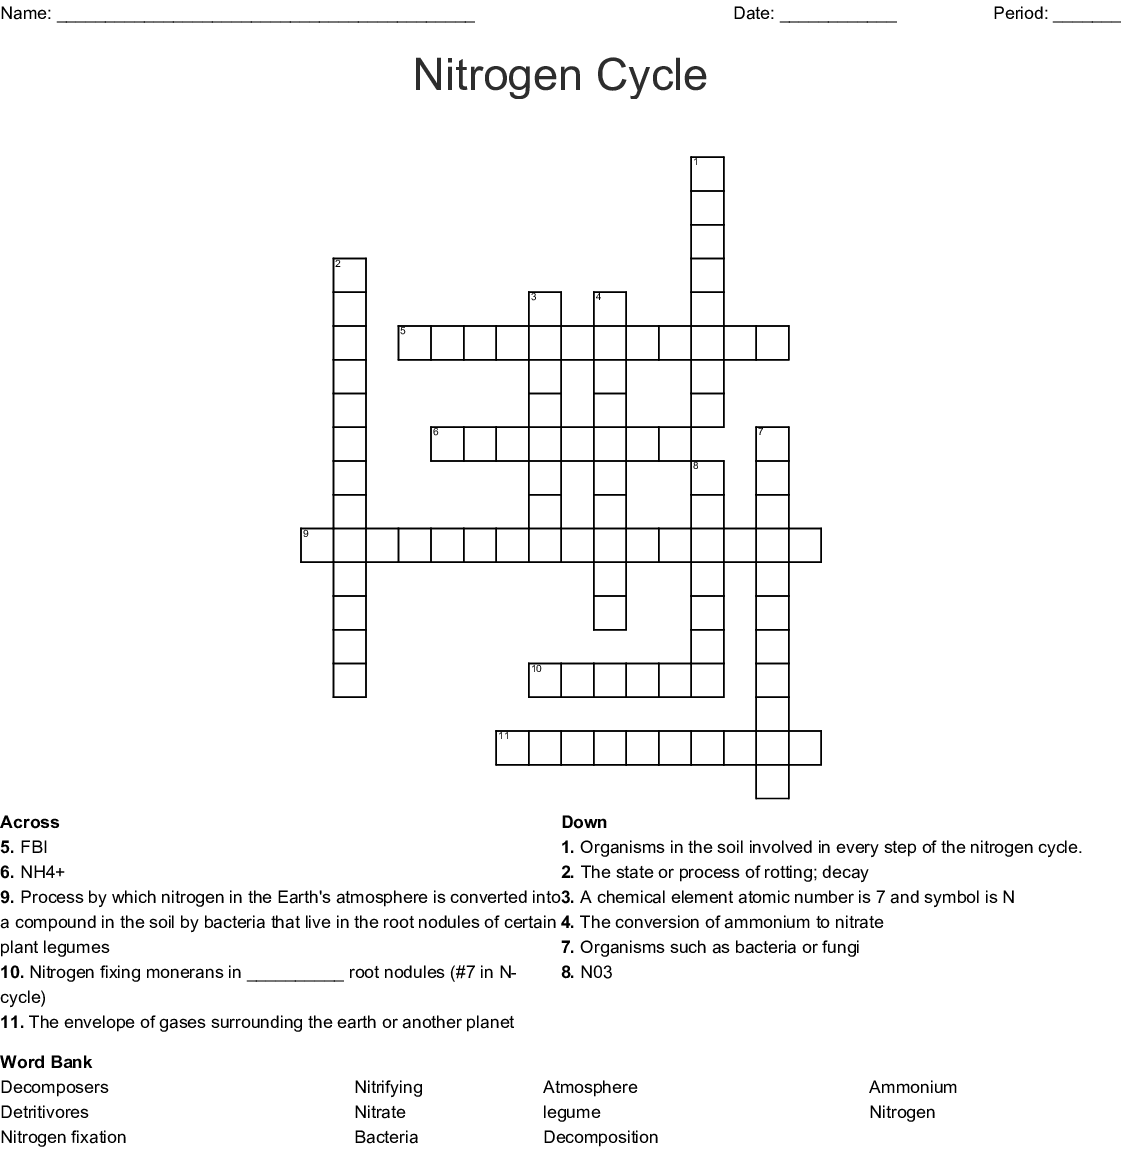 The Nitrogen Cycle Crossword